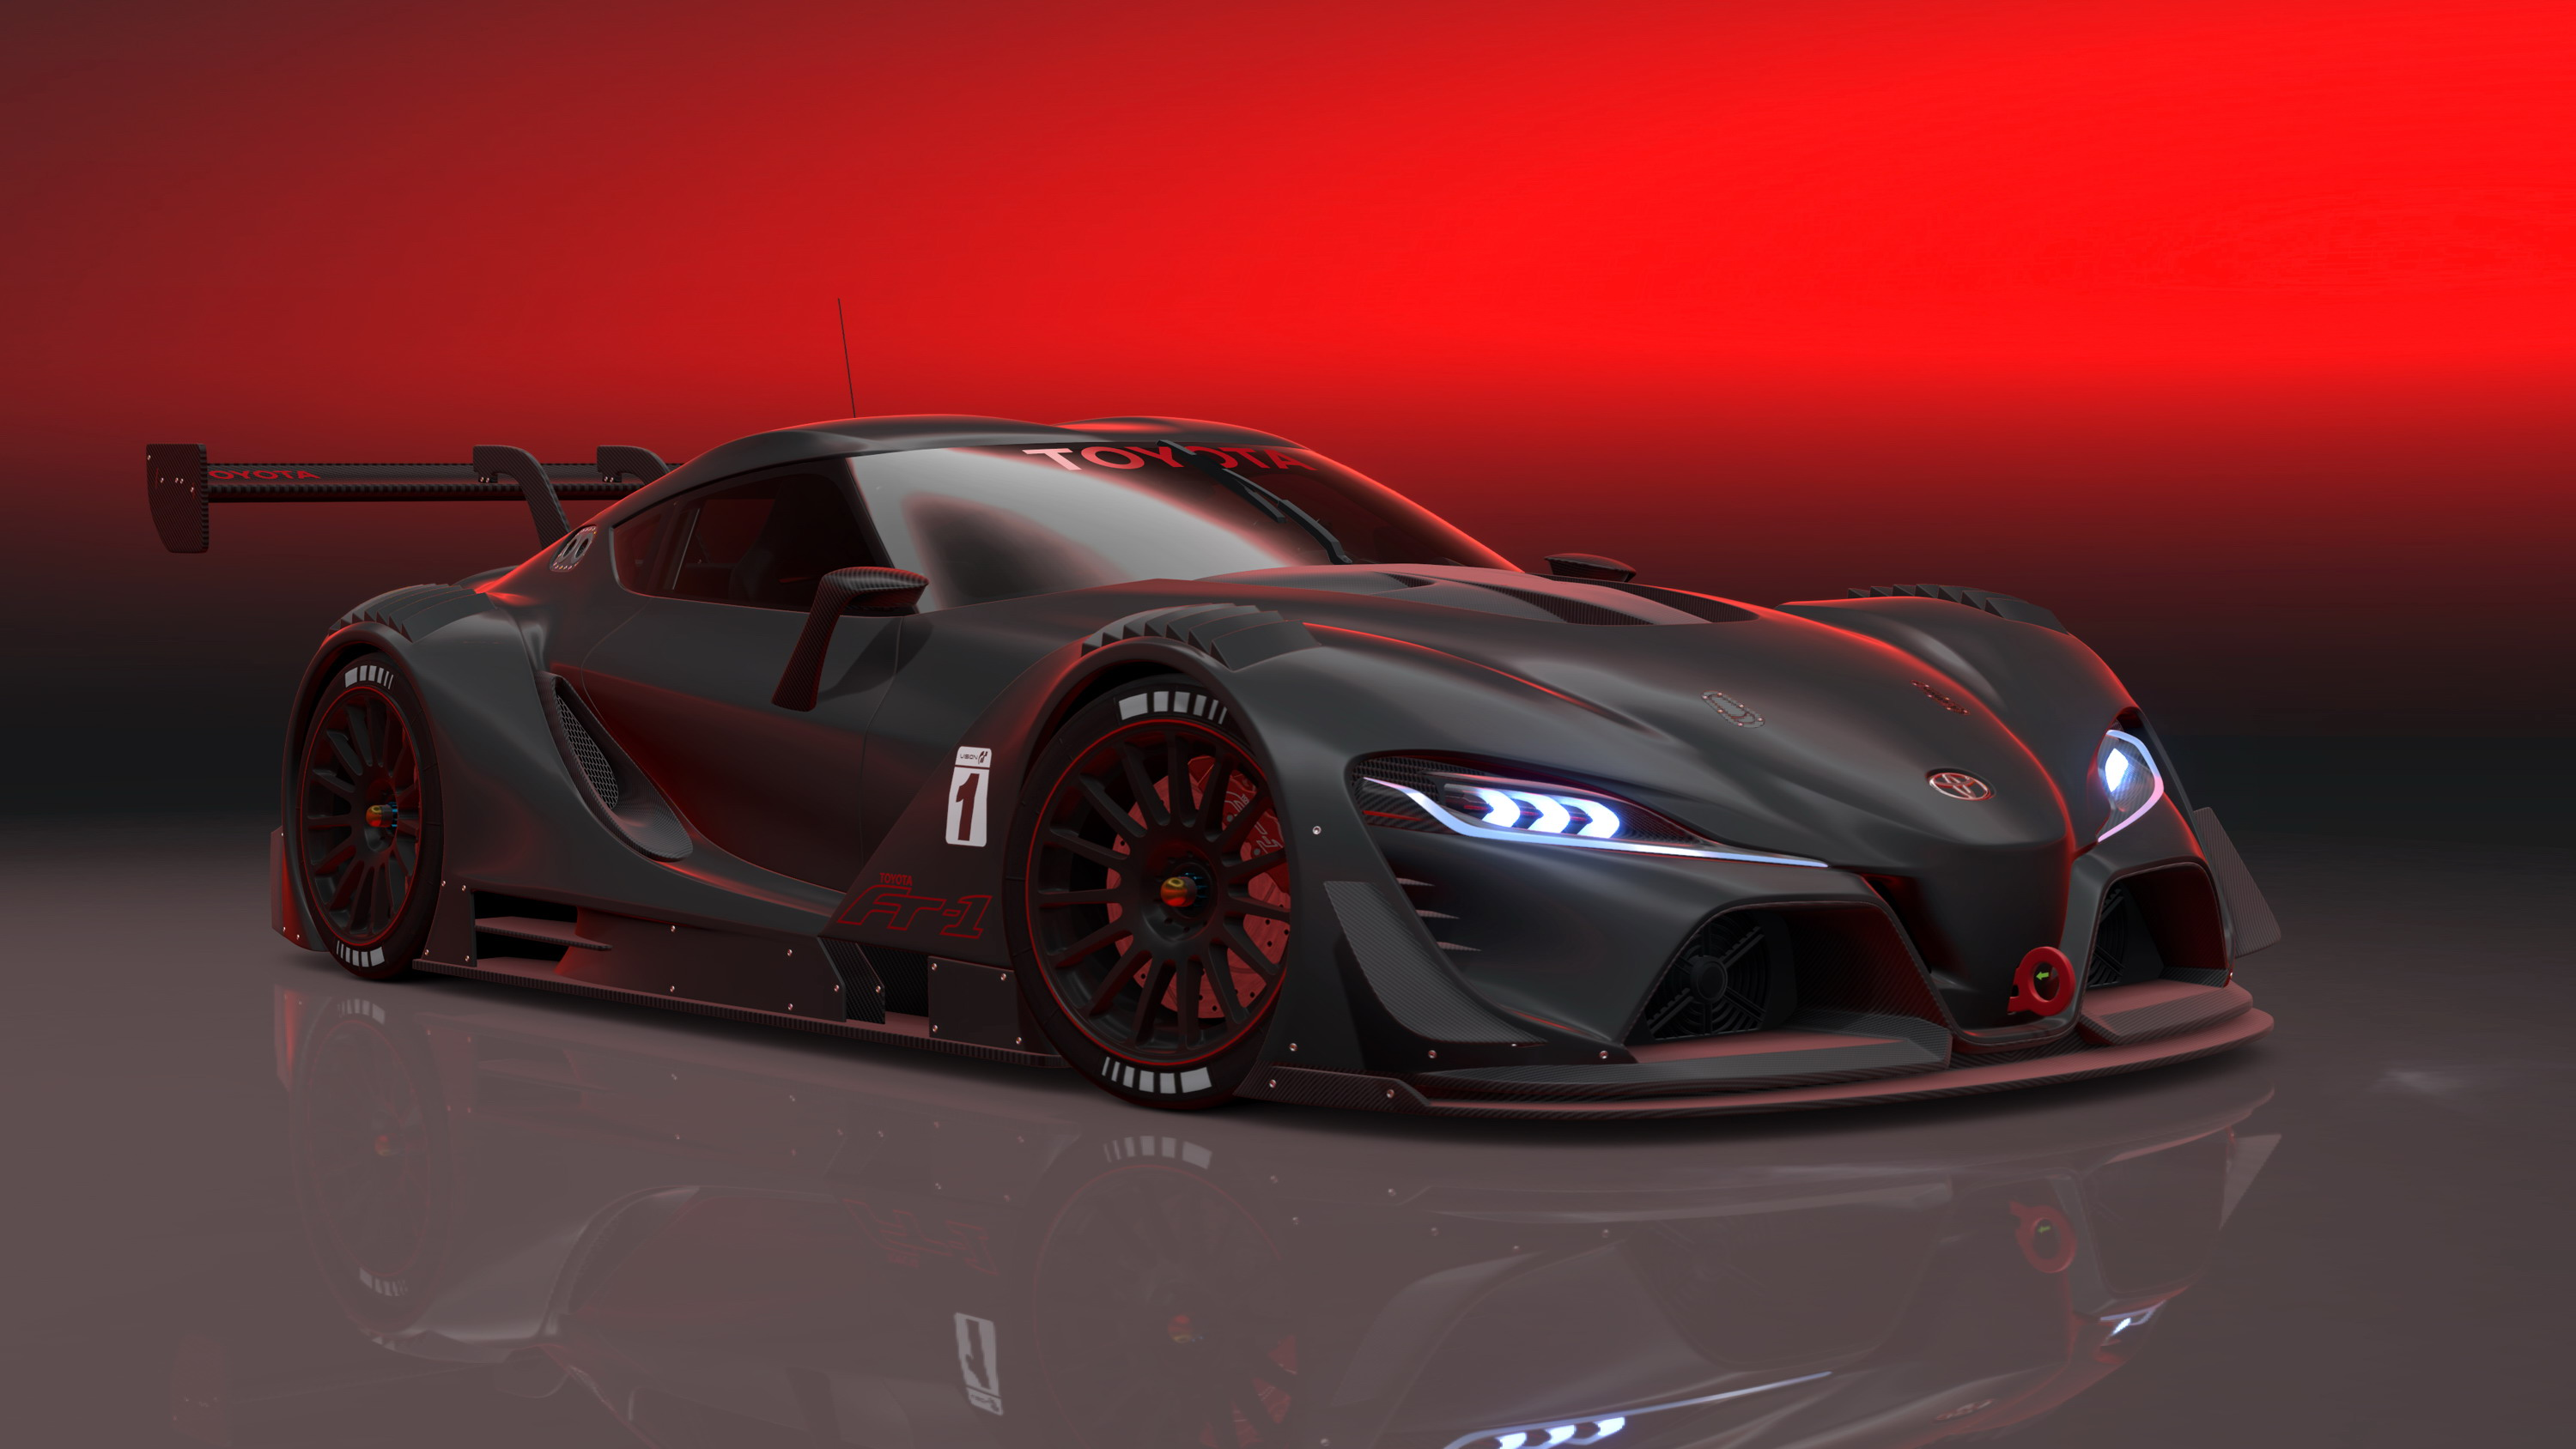 2014 Toyota FT 1 Vision GT Concept